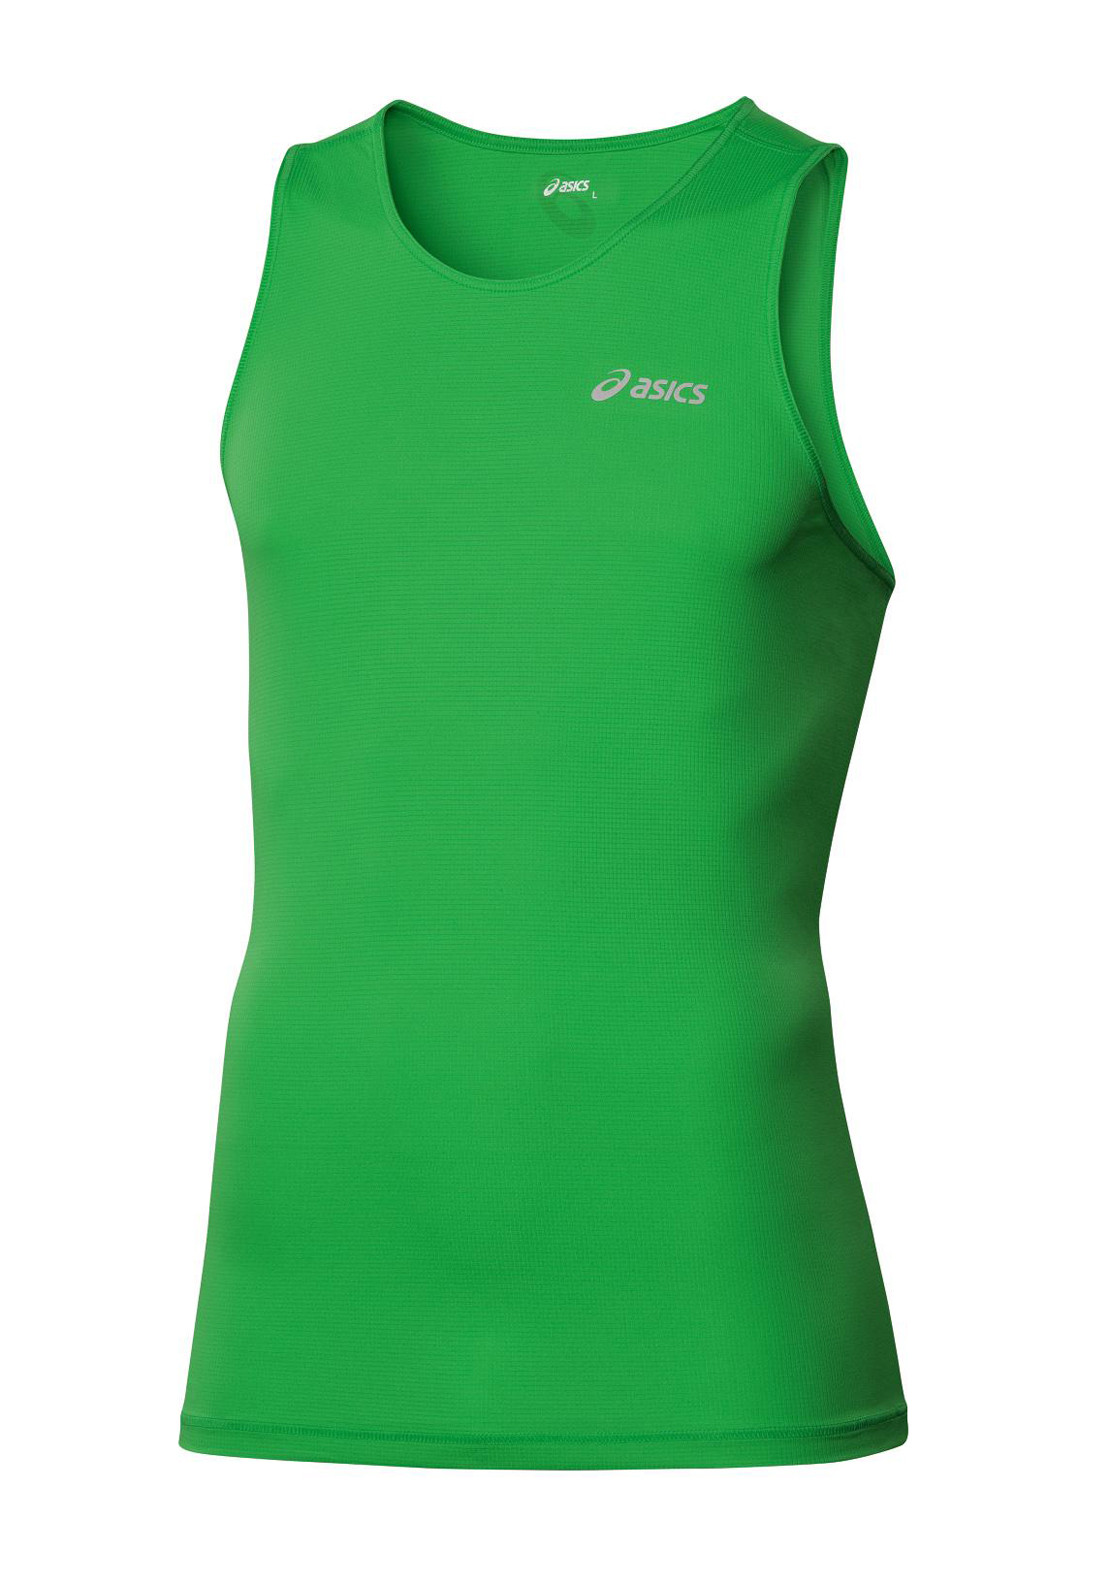 Asics Men's Singlet, Power Green